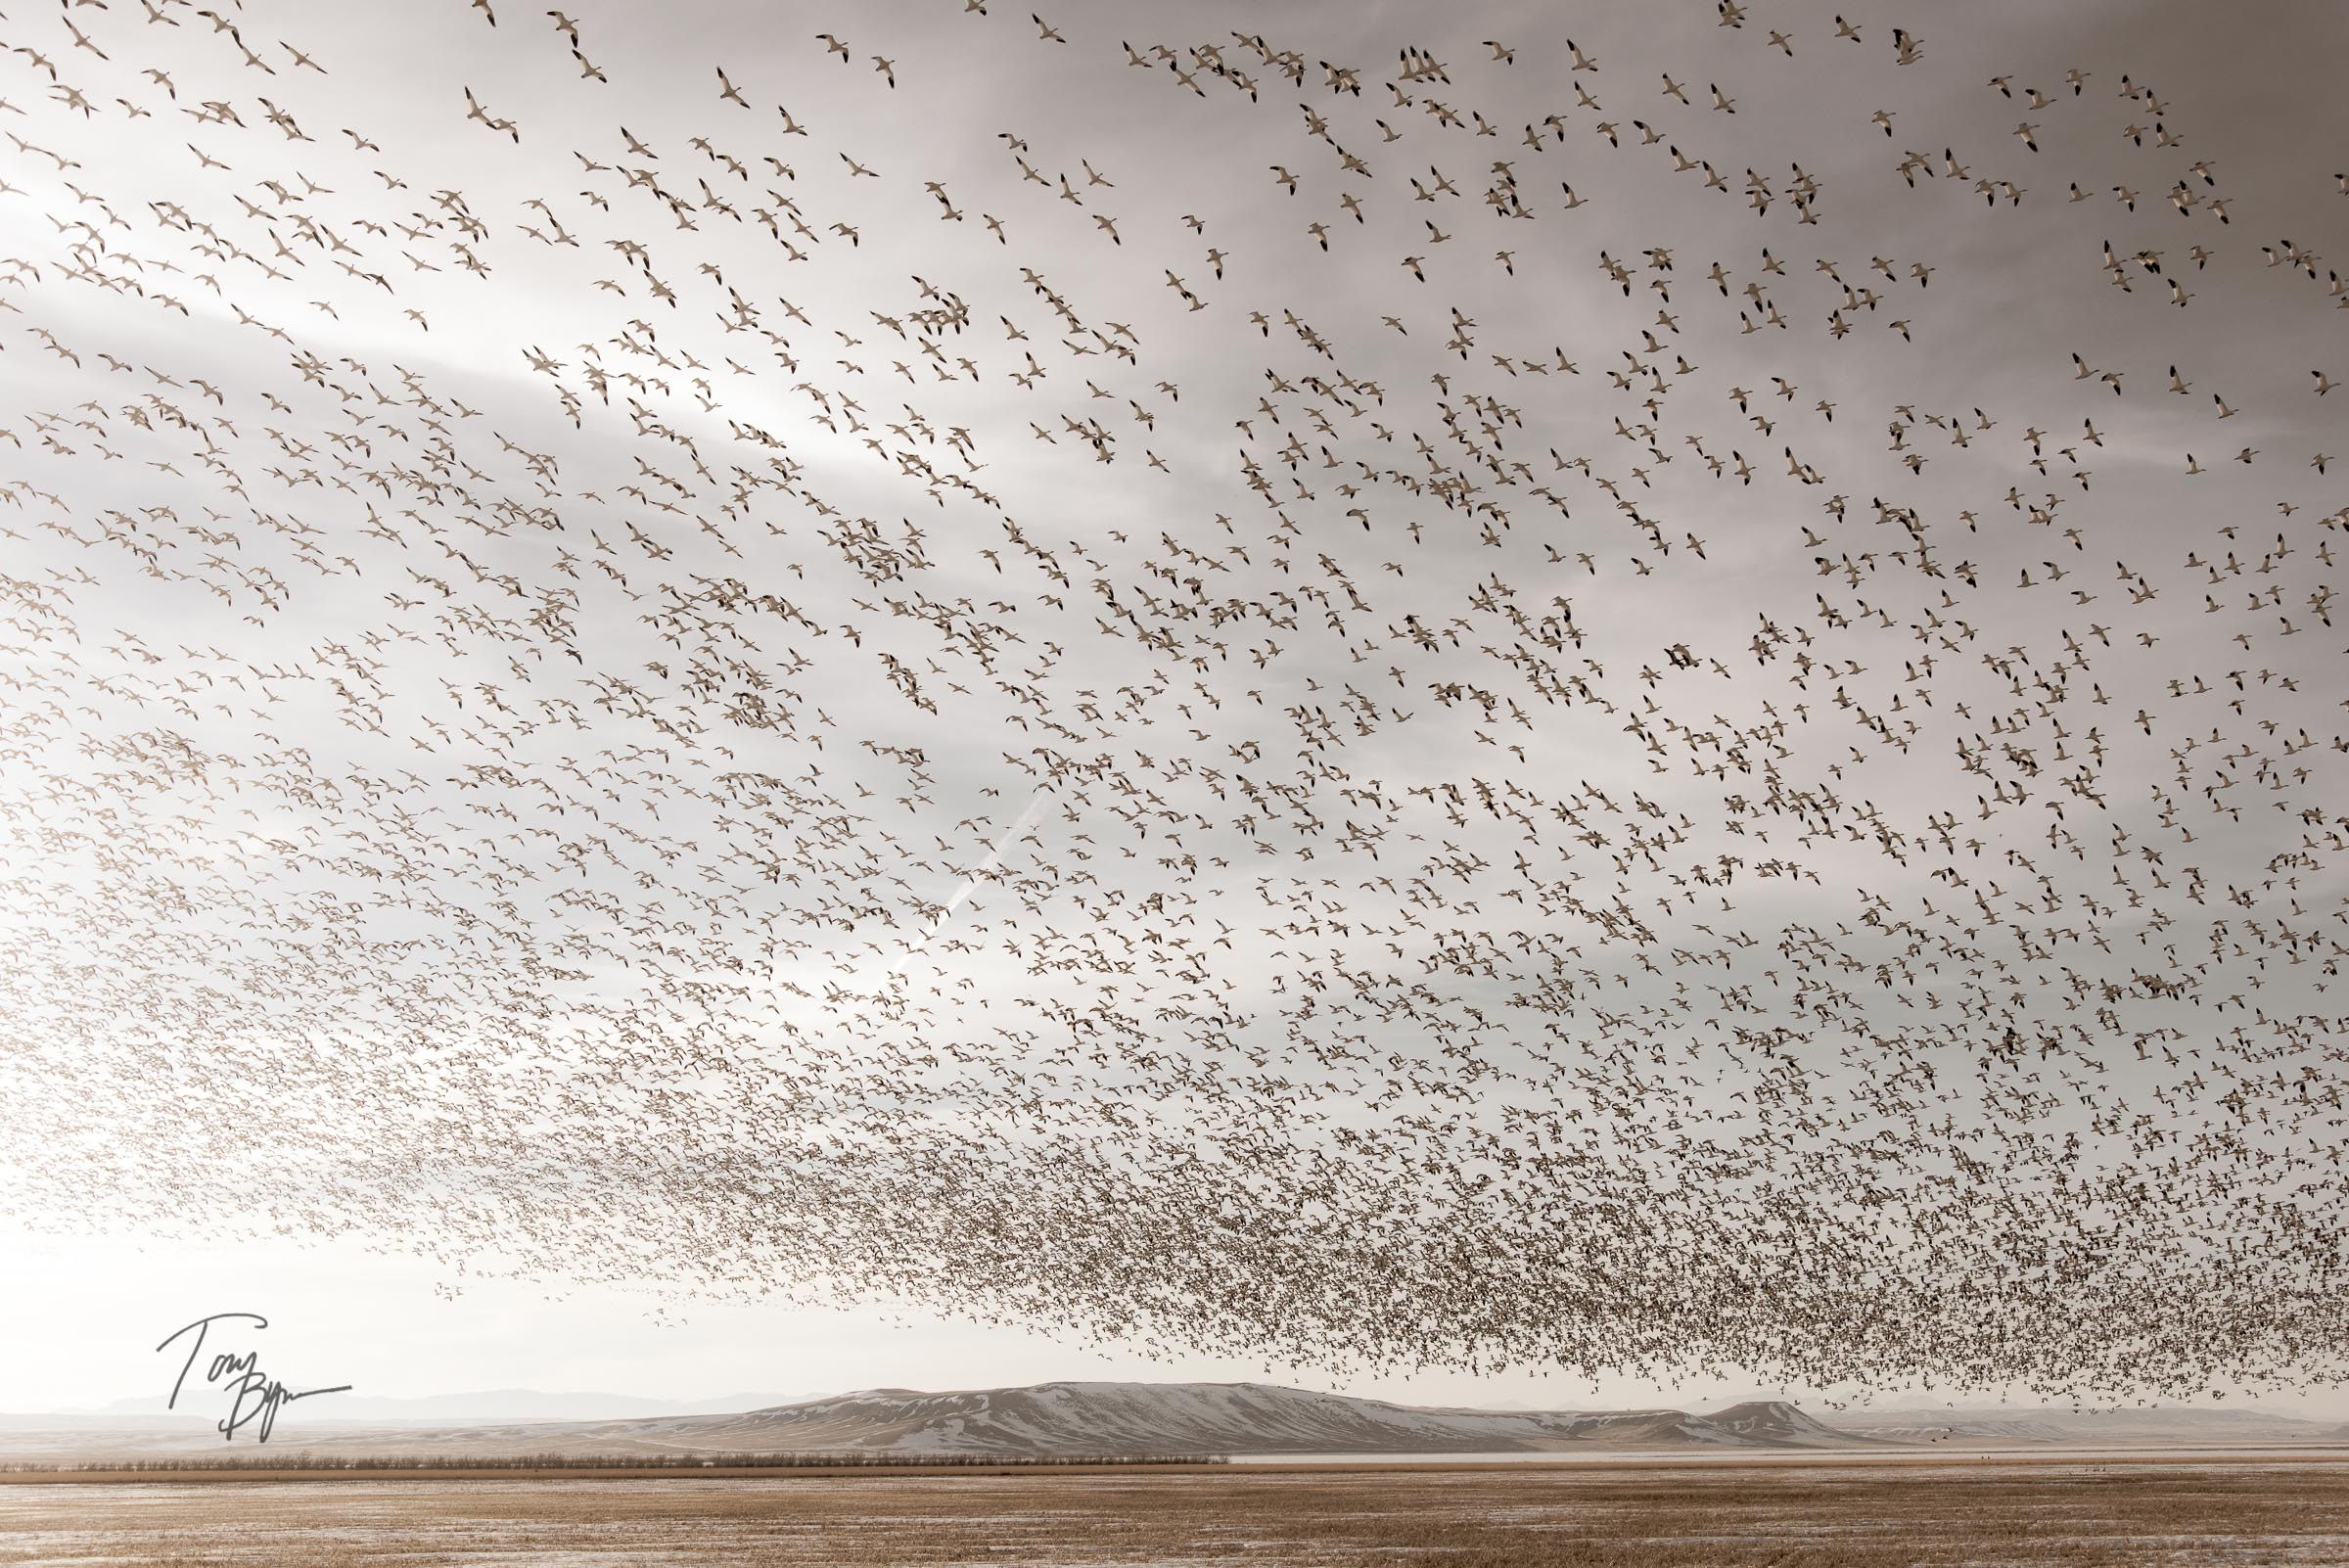 Thousands of snow geese lift off and leave the area. © Tony Bynum